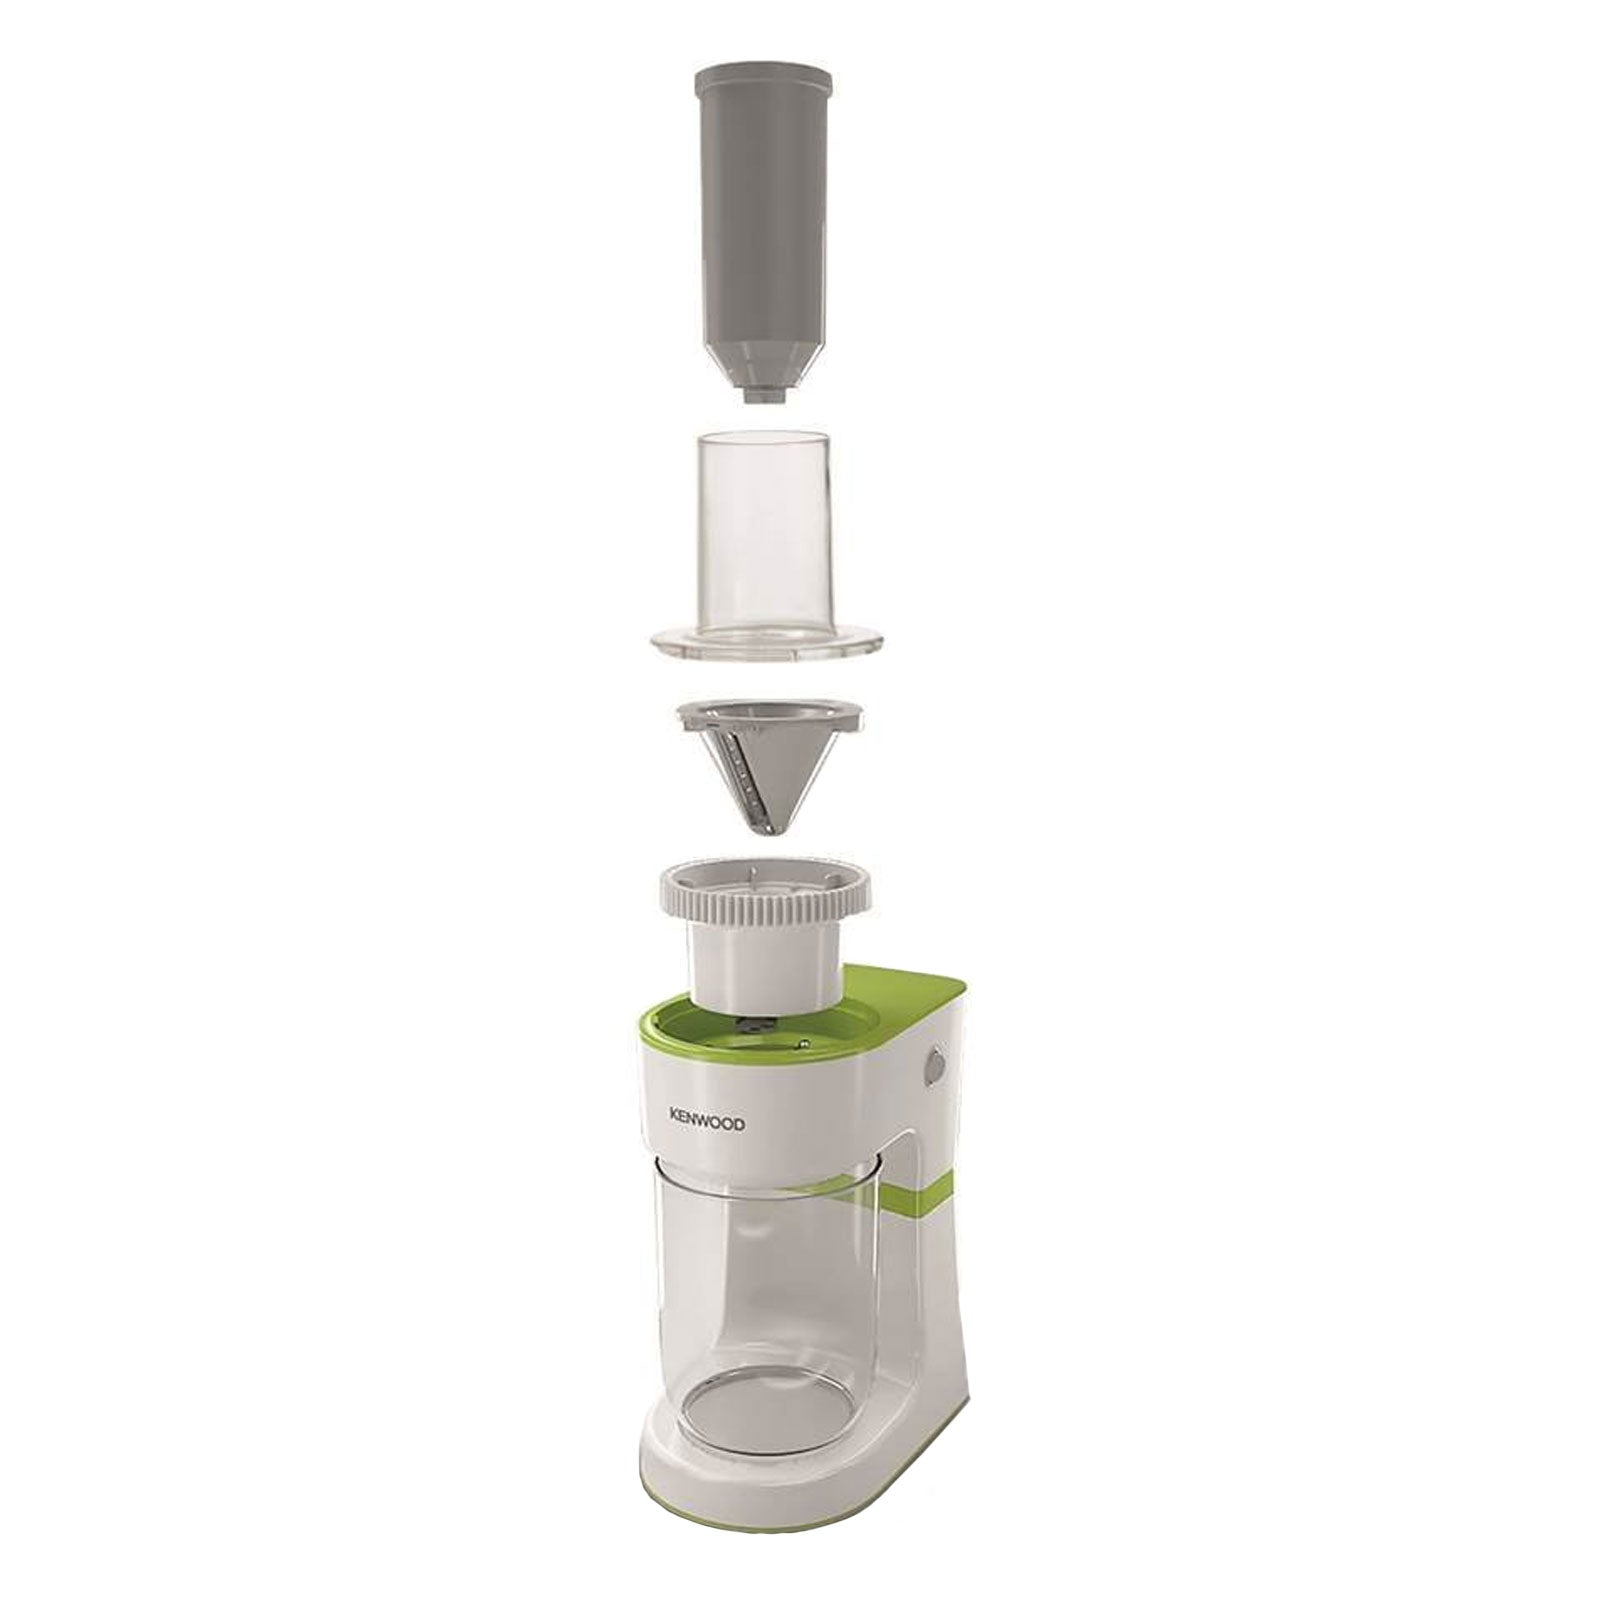 KENWOOD ELECTRIC SPIRALIZER WHITE HEALTHY EATING FRUIT VEGTABLES SLICER FGP200WG